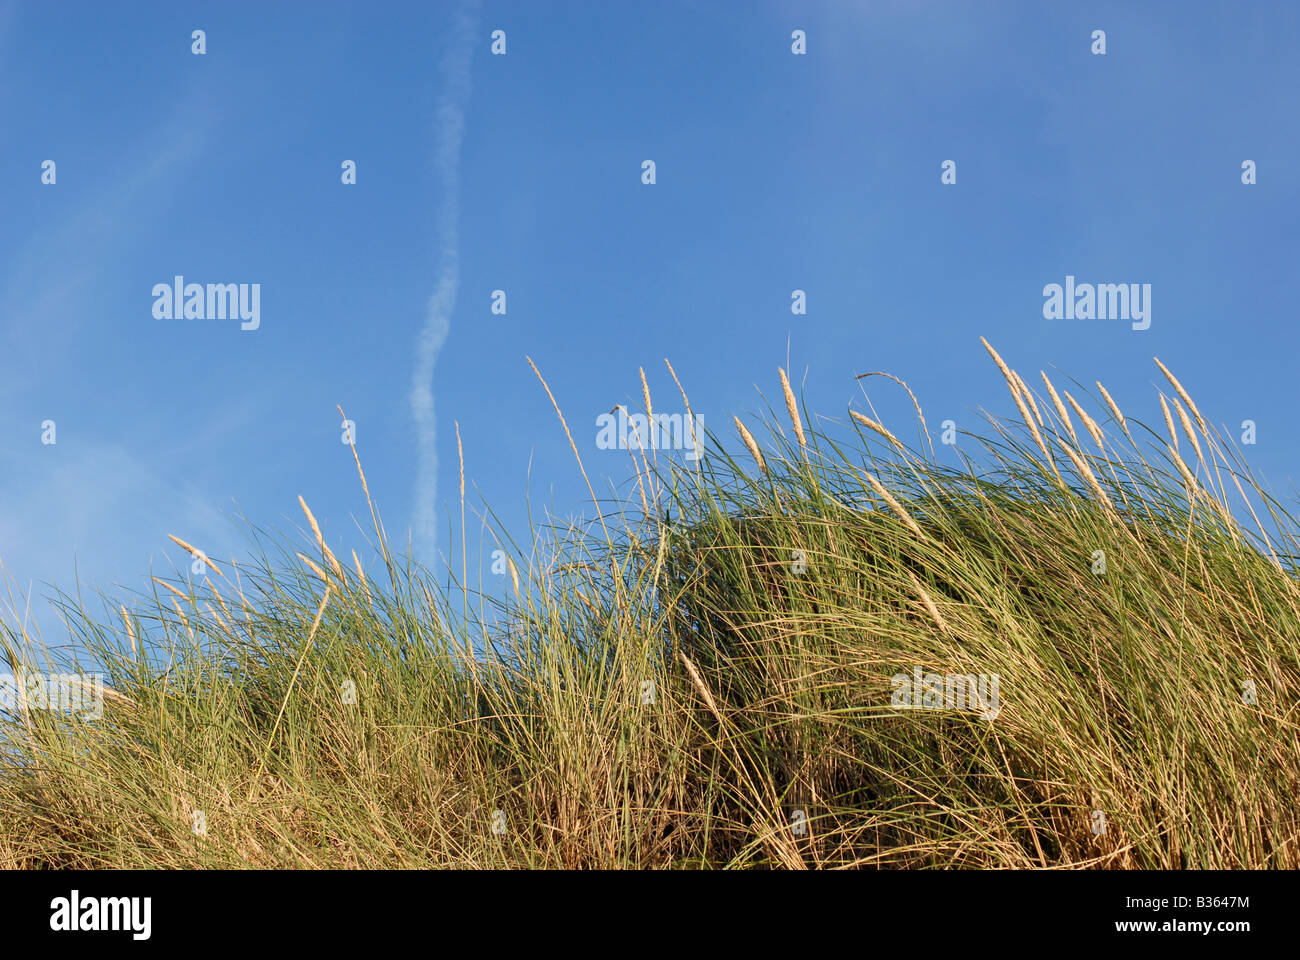 Marram beach grass blowing in the coastal breeze along Talacre Beach, North Wales - Stock Image